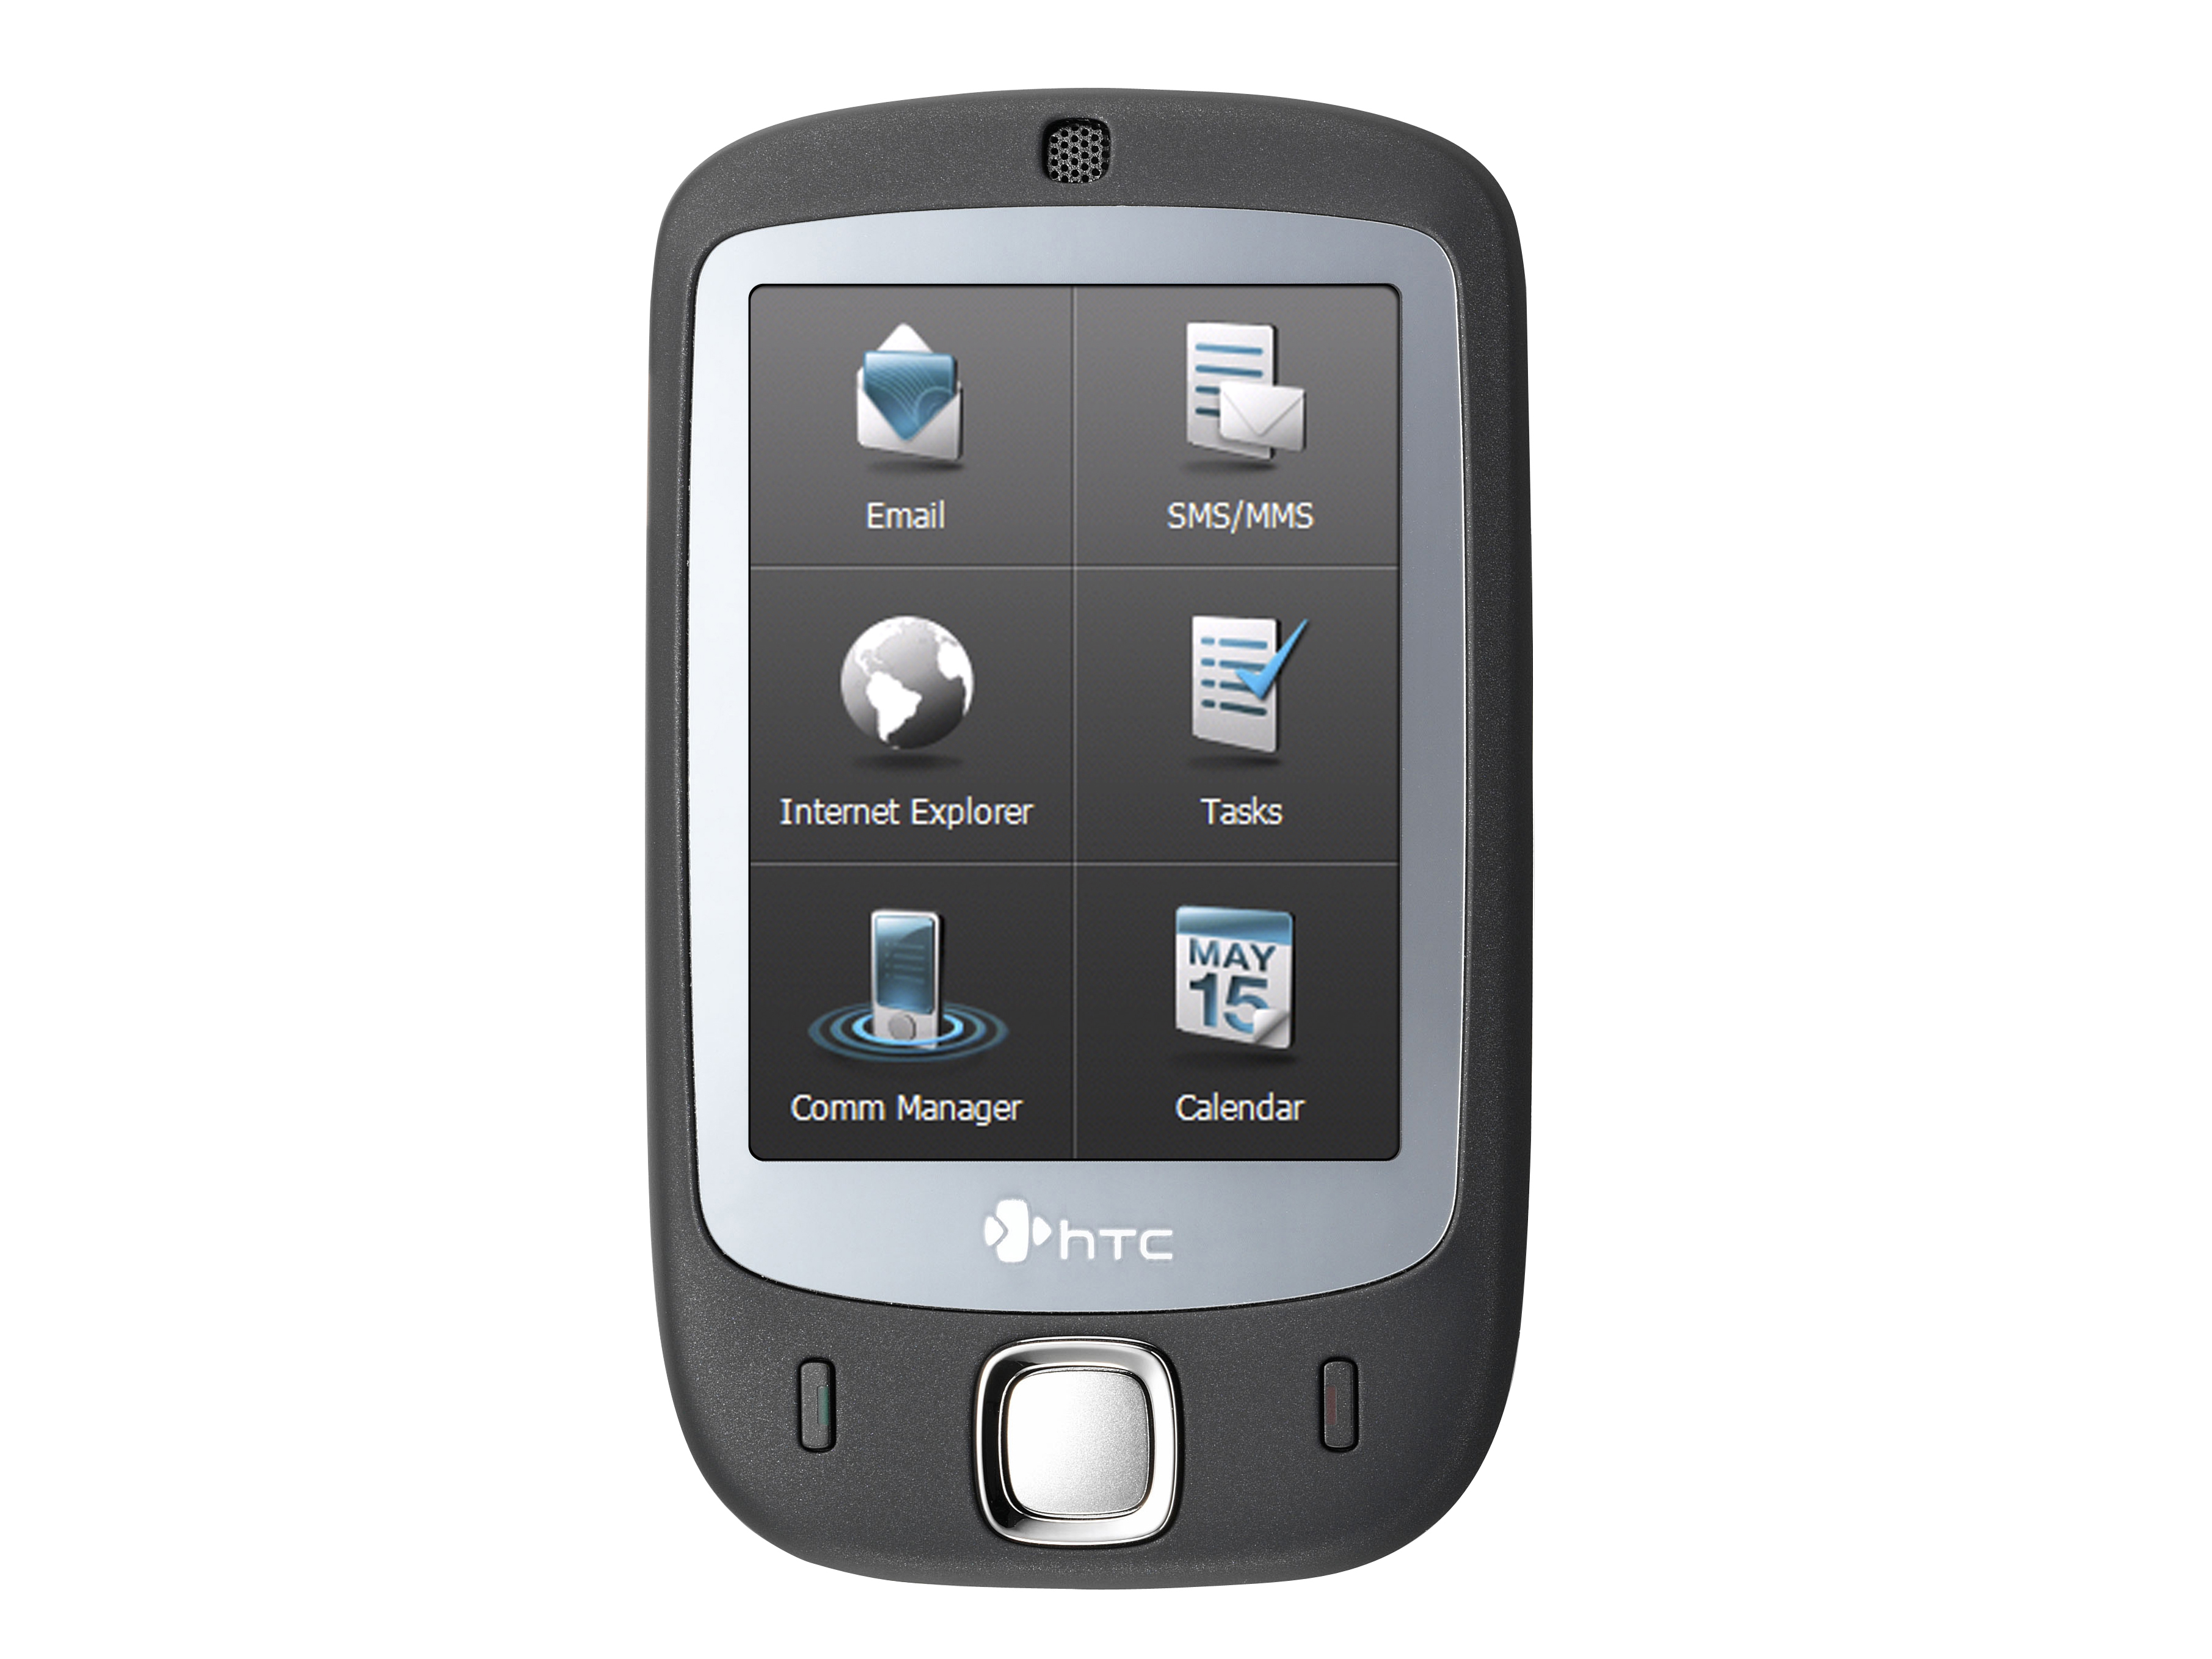 htc touch techradar rh techradar com HTC Touch Pro 2 Specifications HTC Touch Pro 2 Update